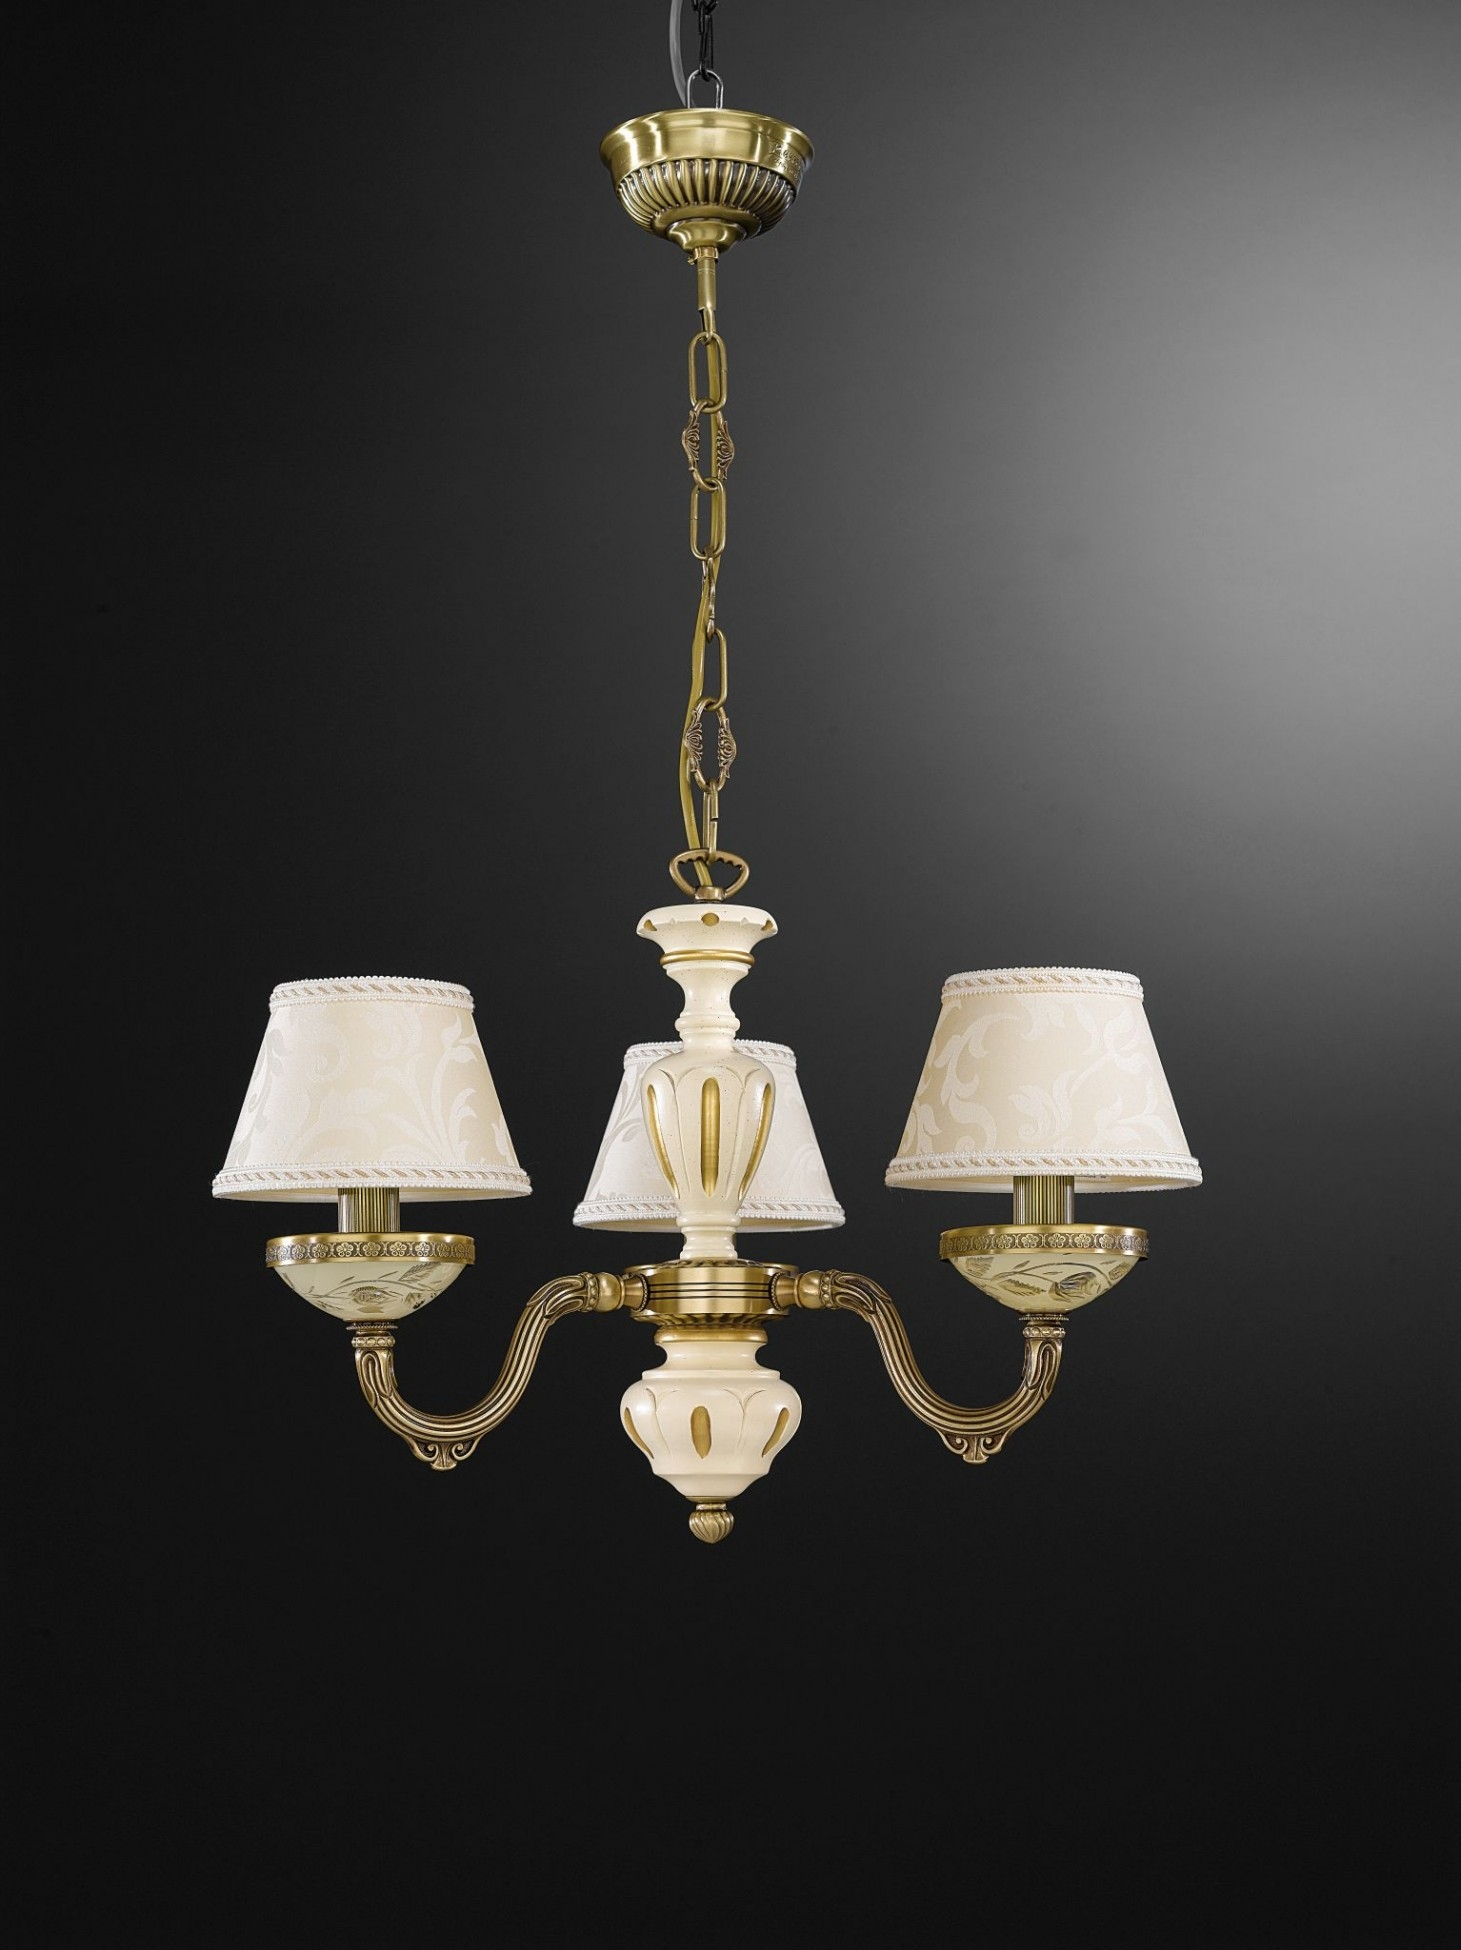 3 Lights Brass Wood And Cream Glass Chandelier With Lamp Shades With Regard To Cream Chandelier Lights (View 15 of 15)